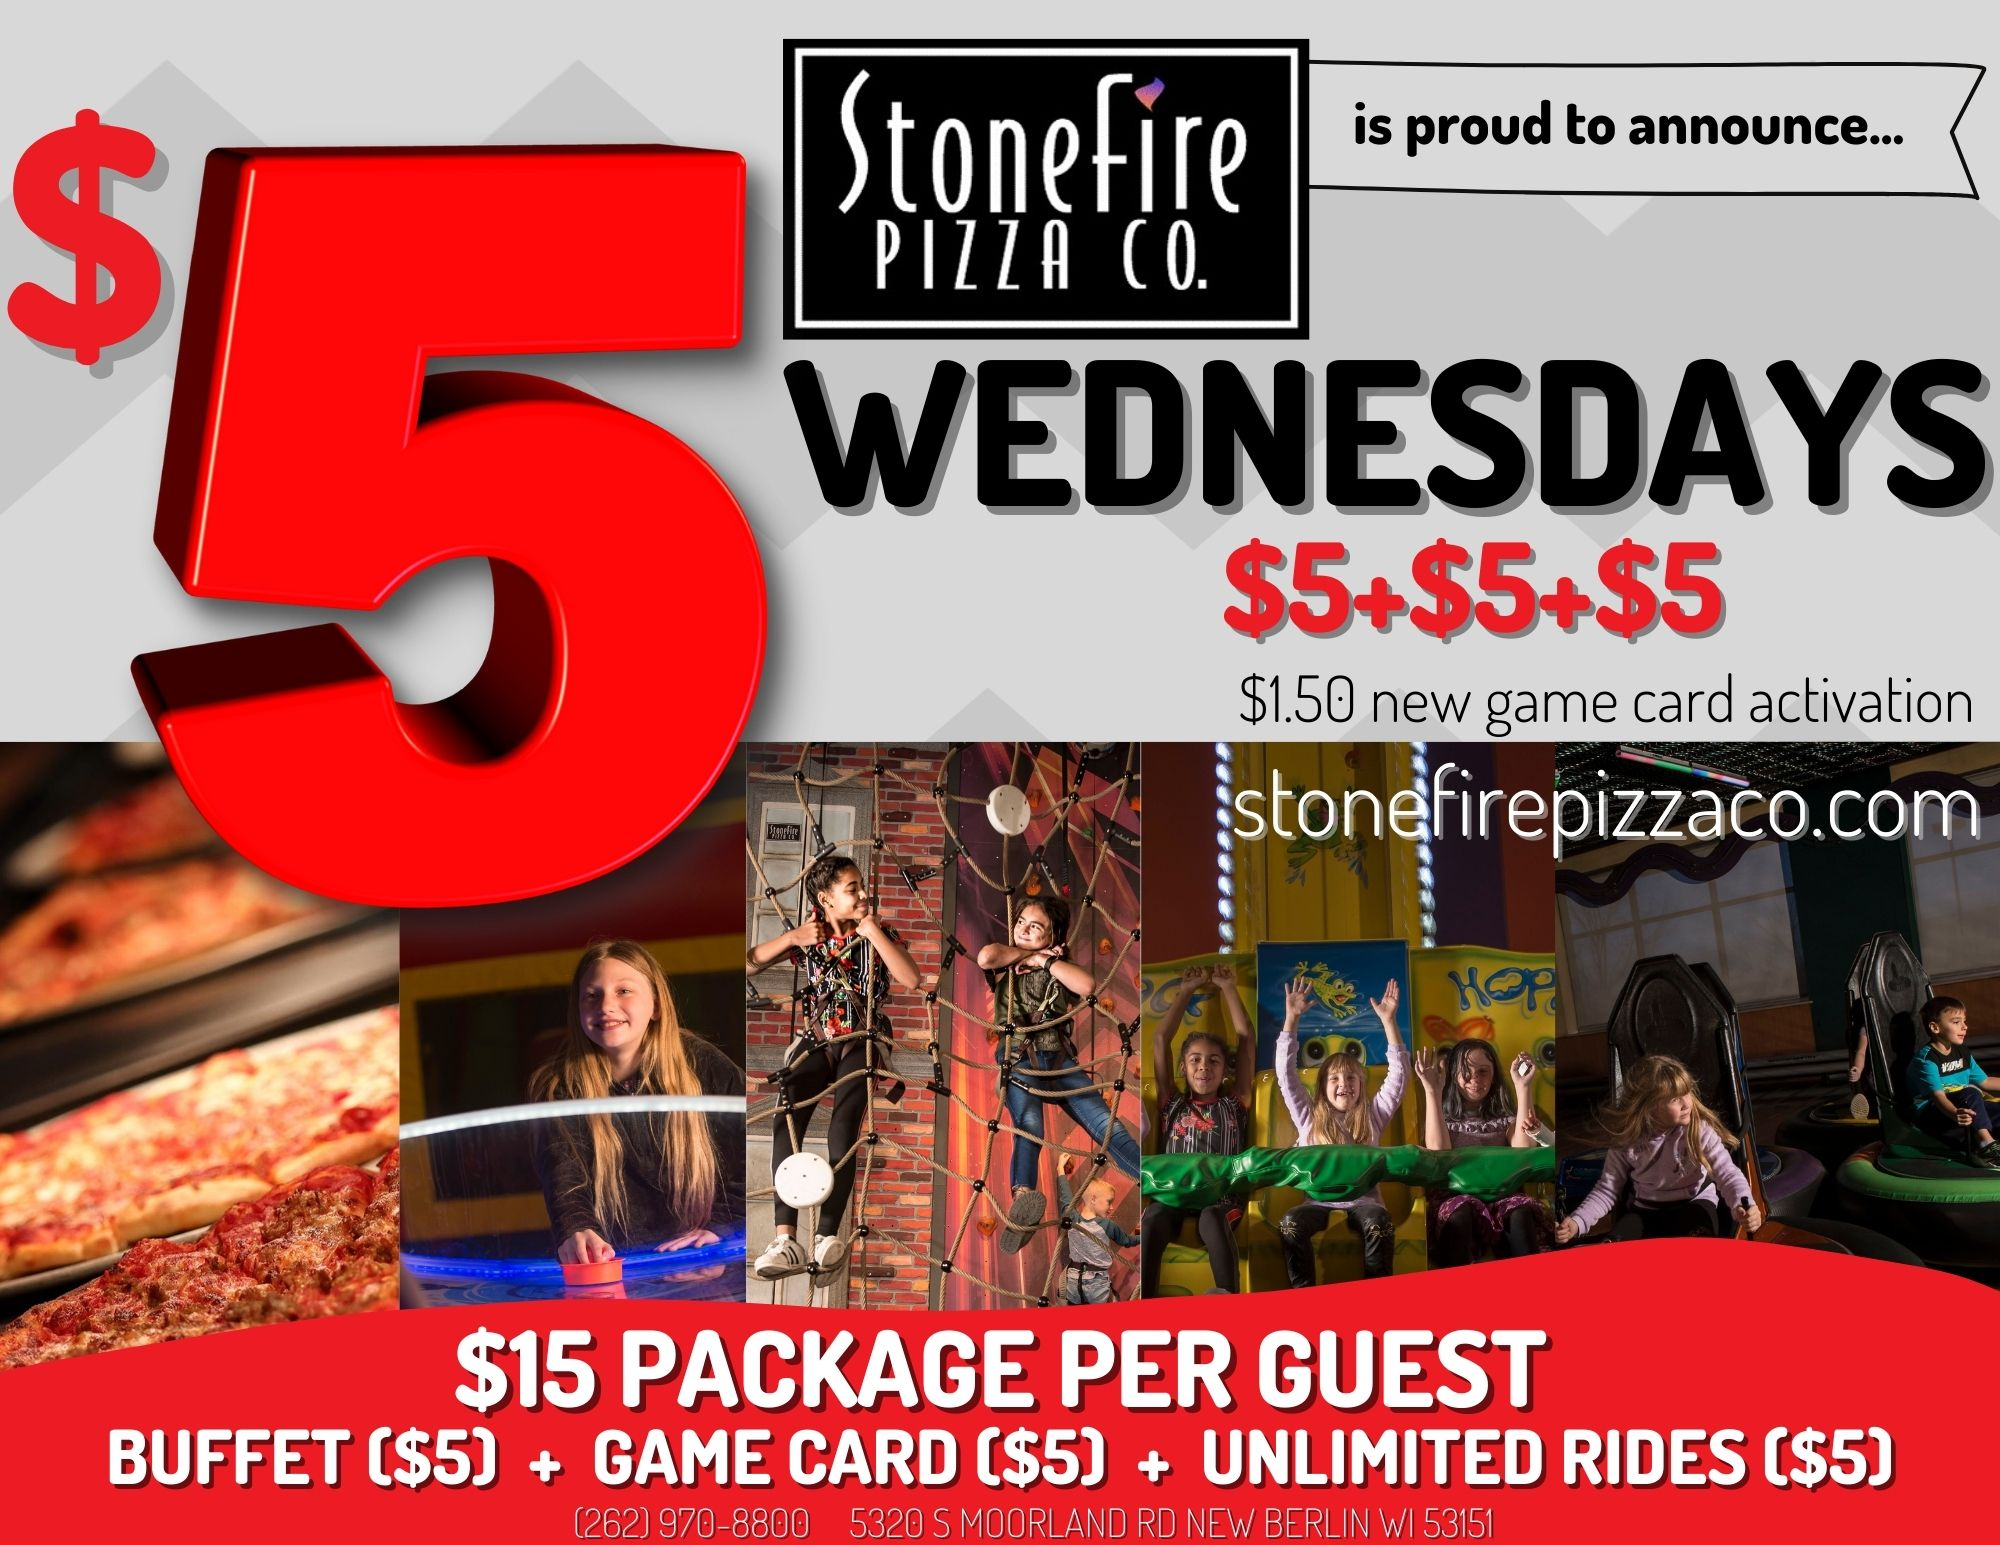 $5 Wednesdays $5+$5+$5, $1.50 new game card activation, $15 Package Per Guest, Buffet ($5) + Game Card ($5) + Unlimited Rides ($5)